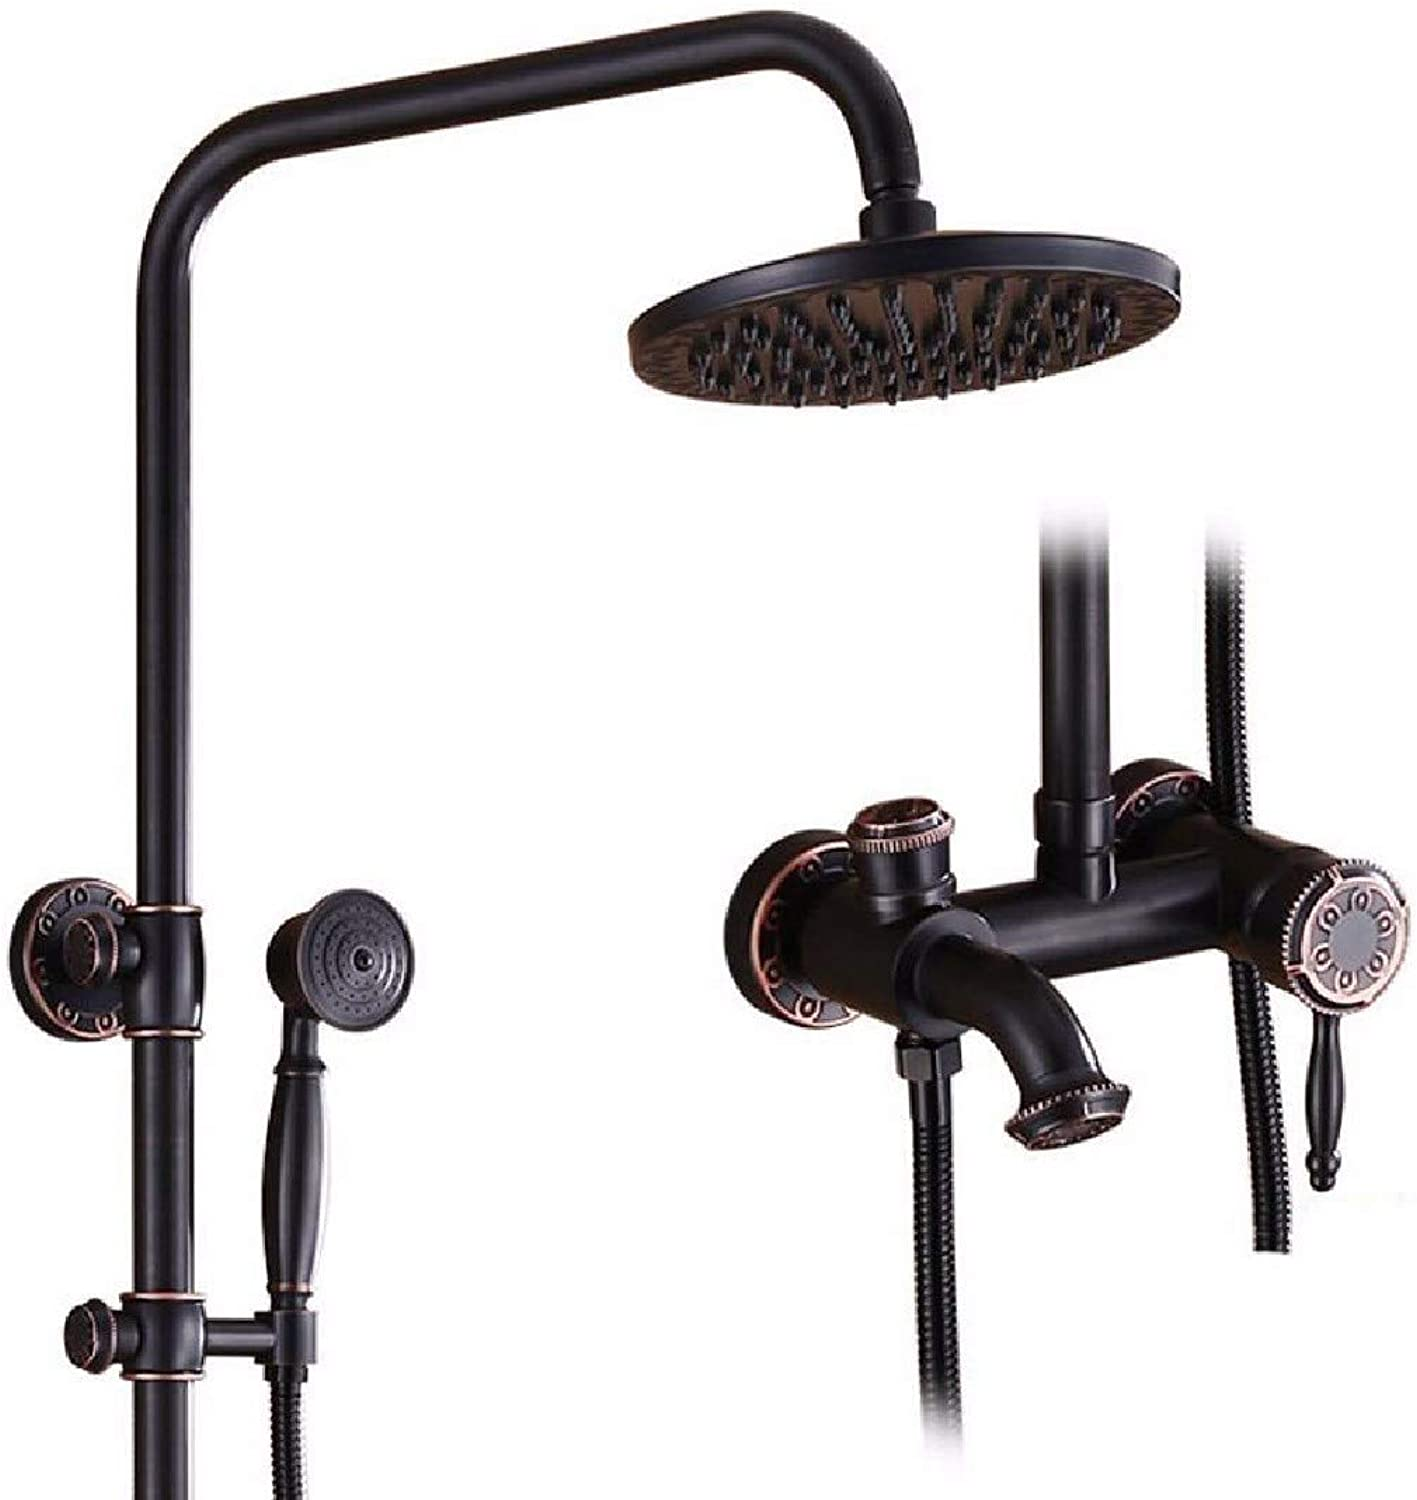 CJSHV shower Copper black shower shower set bathroom redary lifting cold and hot water mixing shower,B